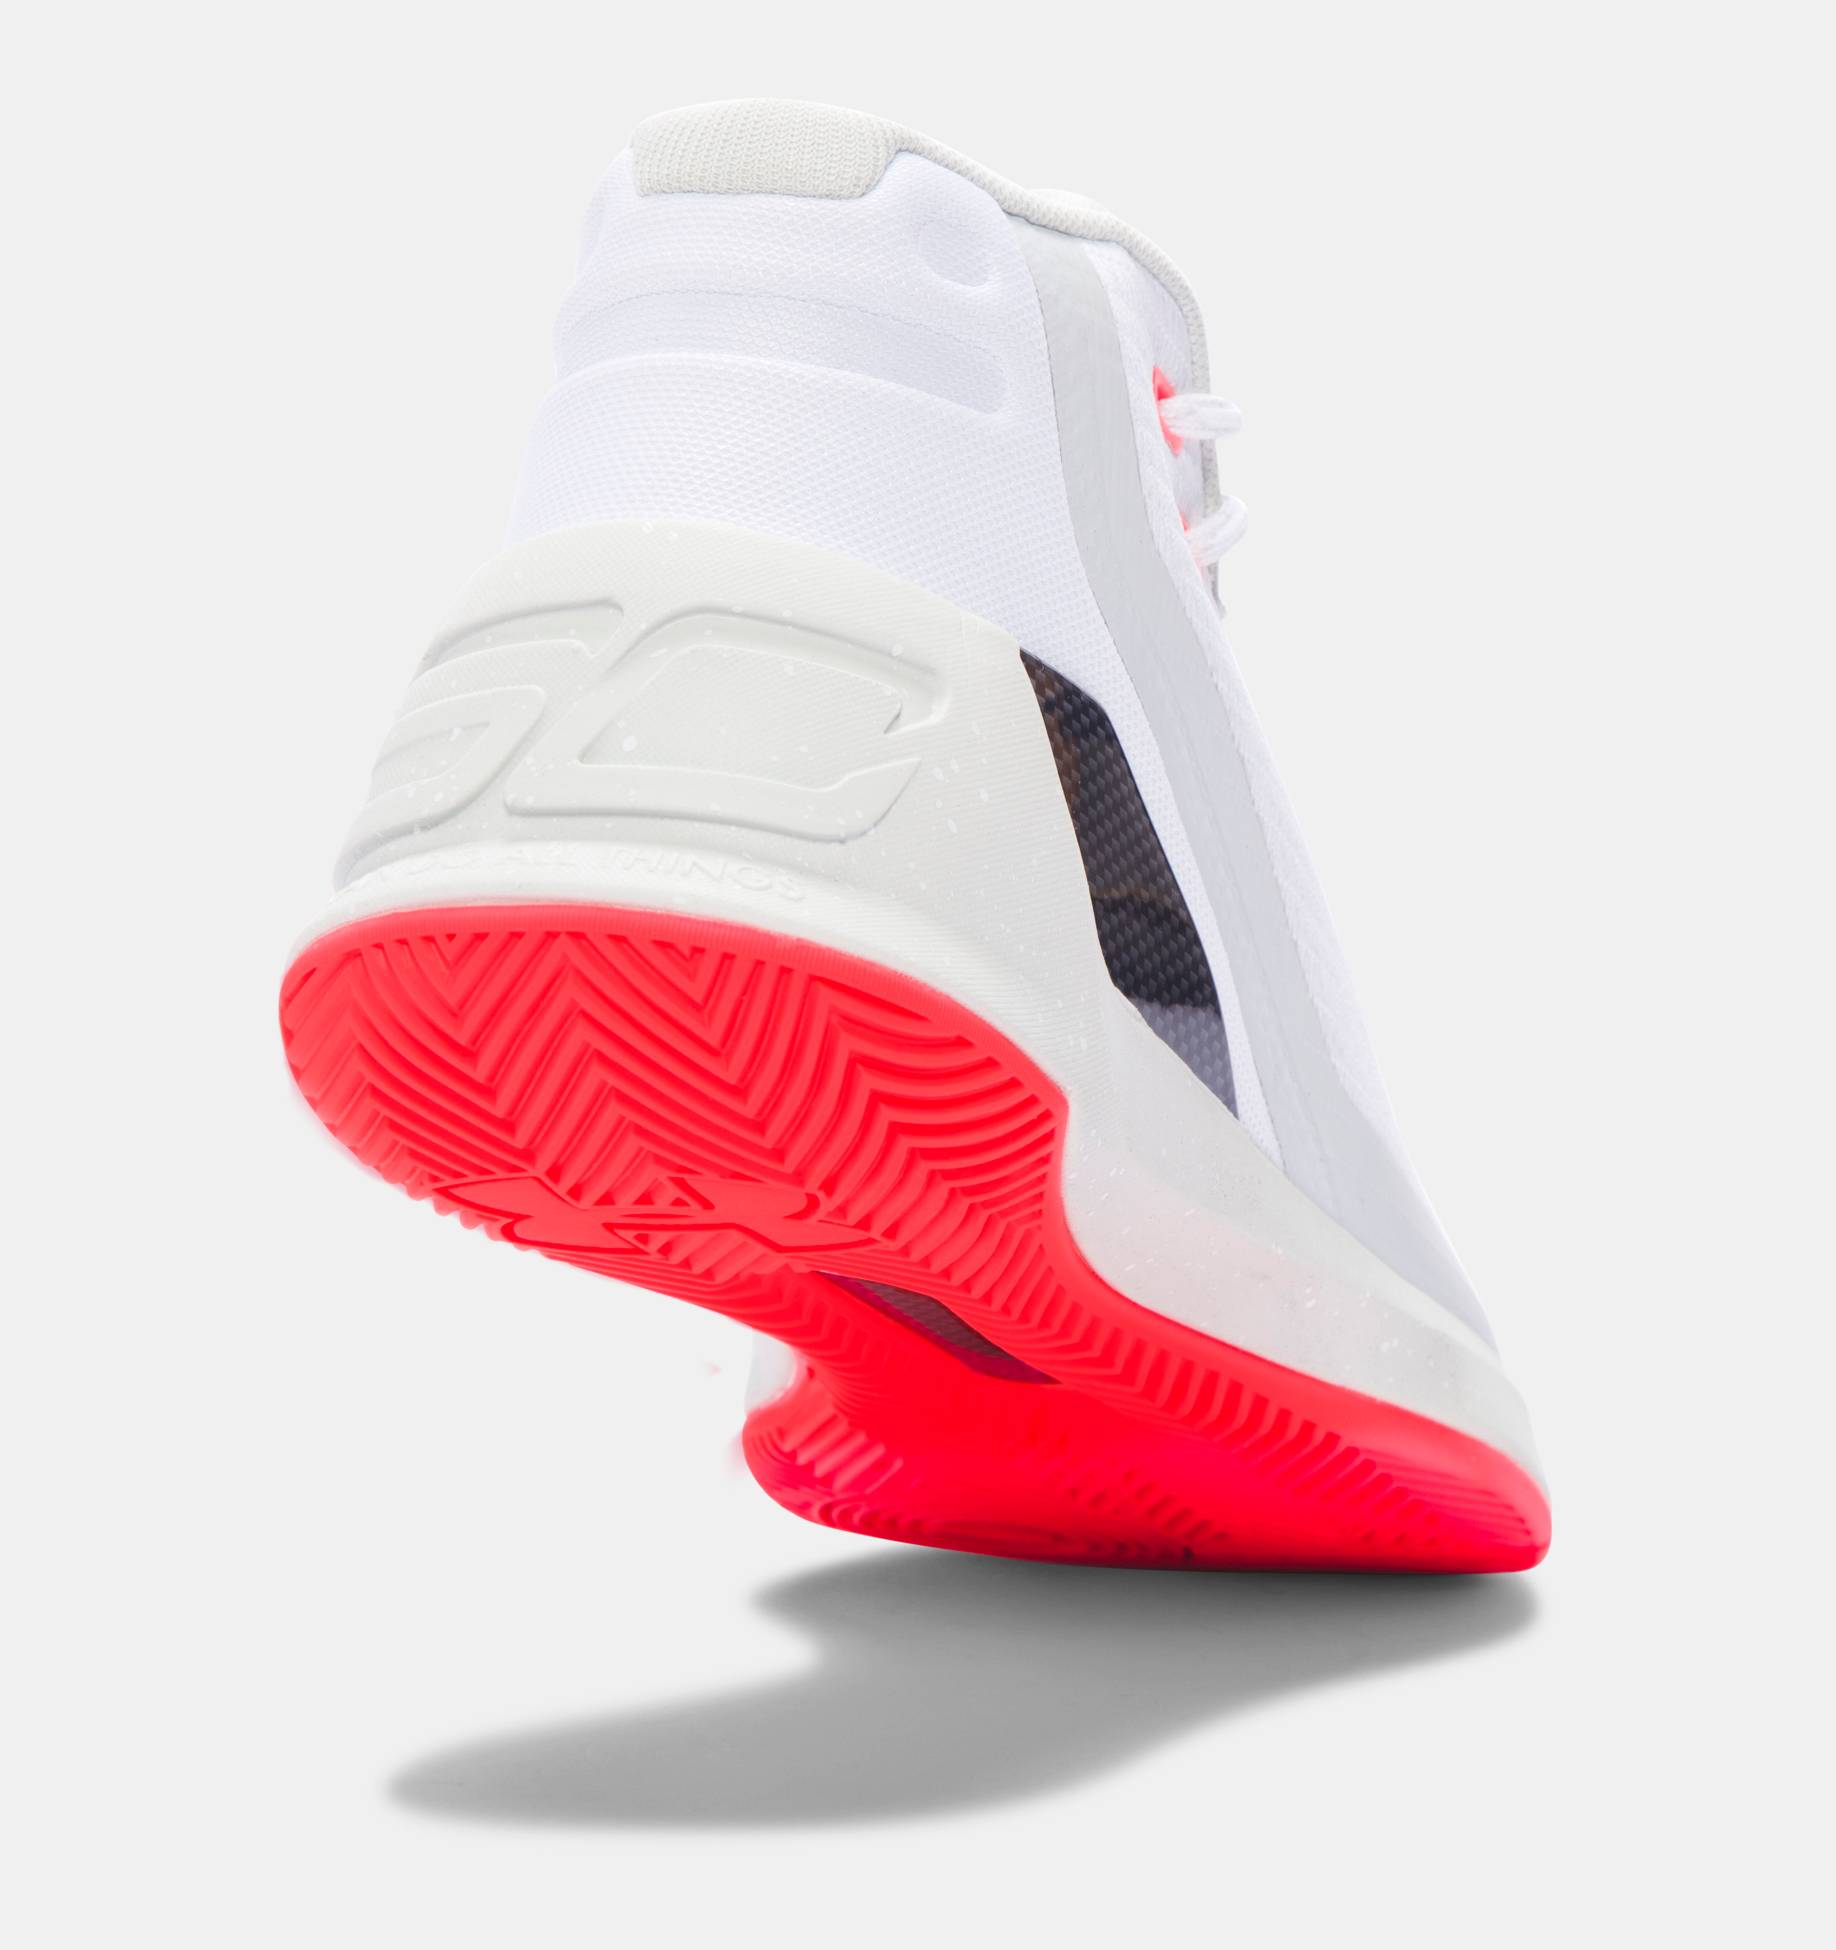 0d6ec44799ae Pink Accents On The Next Under Armour Curry 3 • KicksOnFire.com